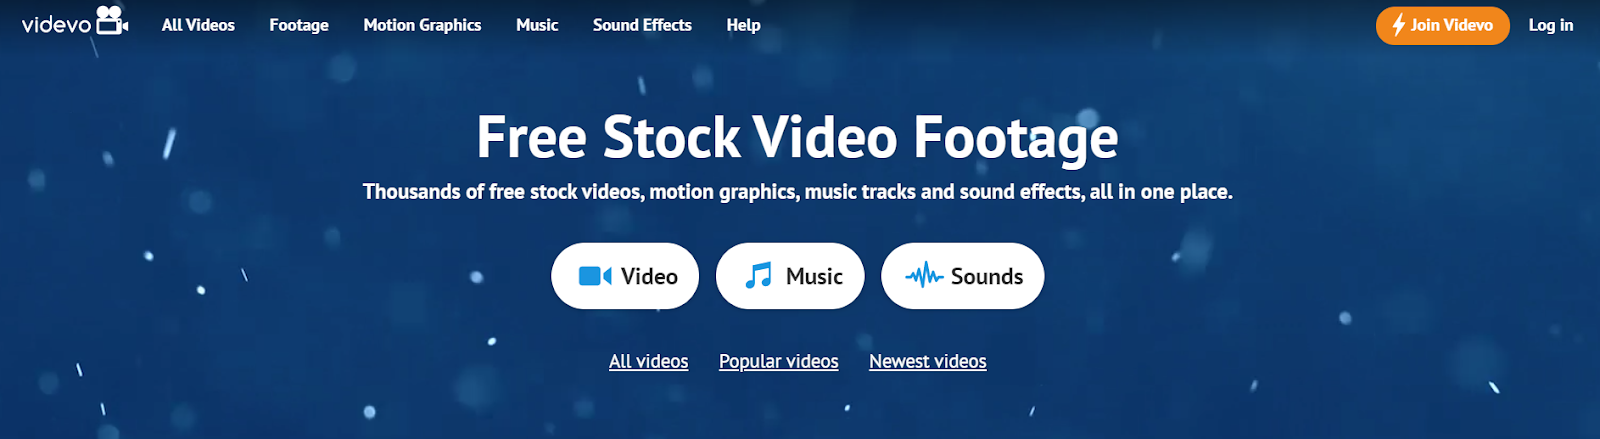 videvo is for best for stock footage